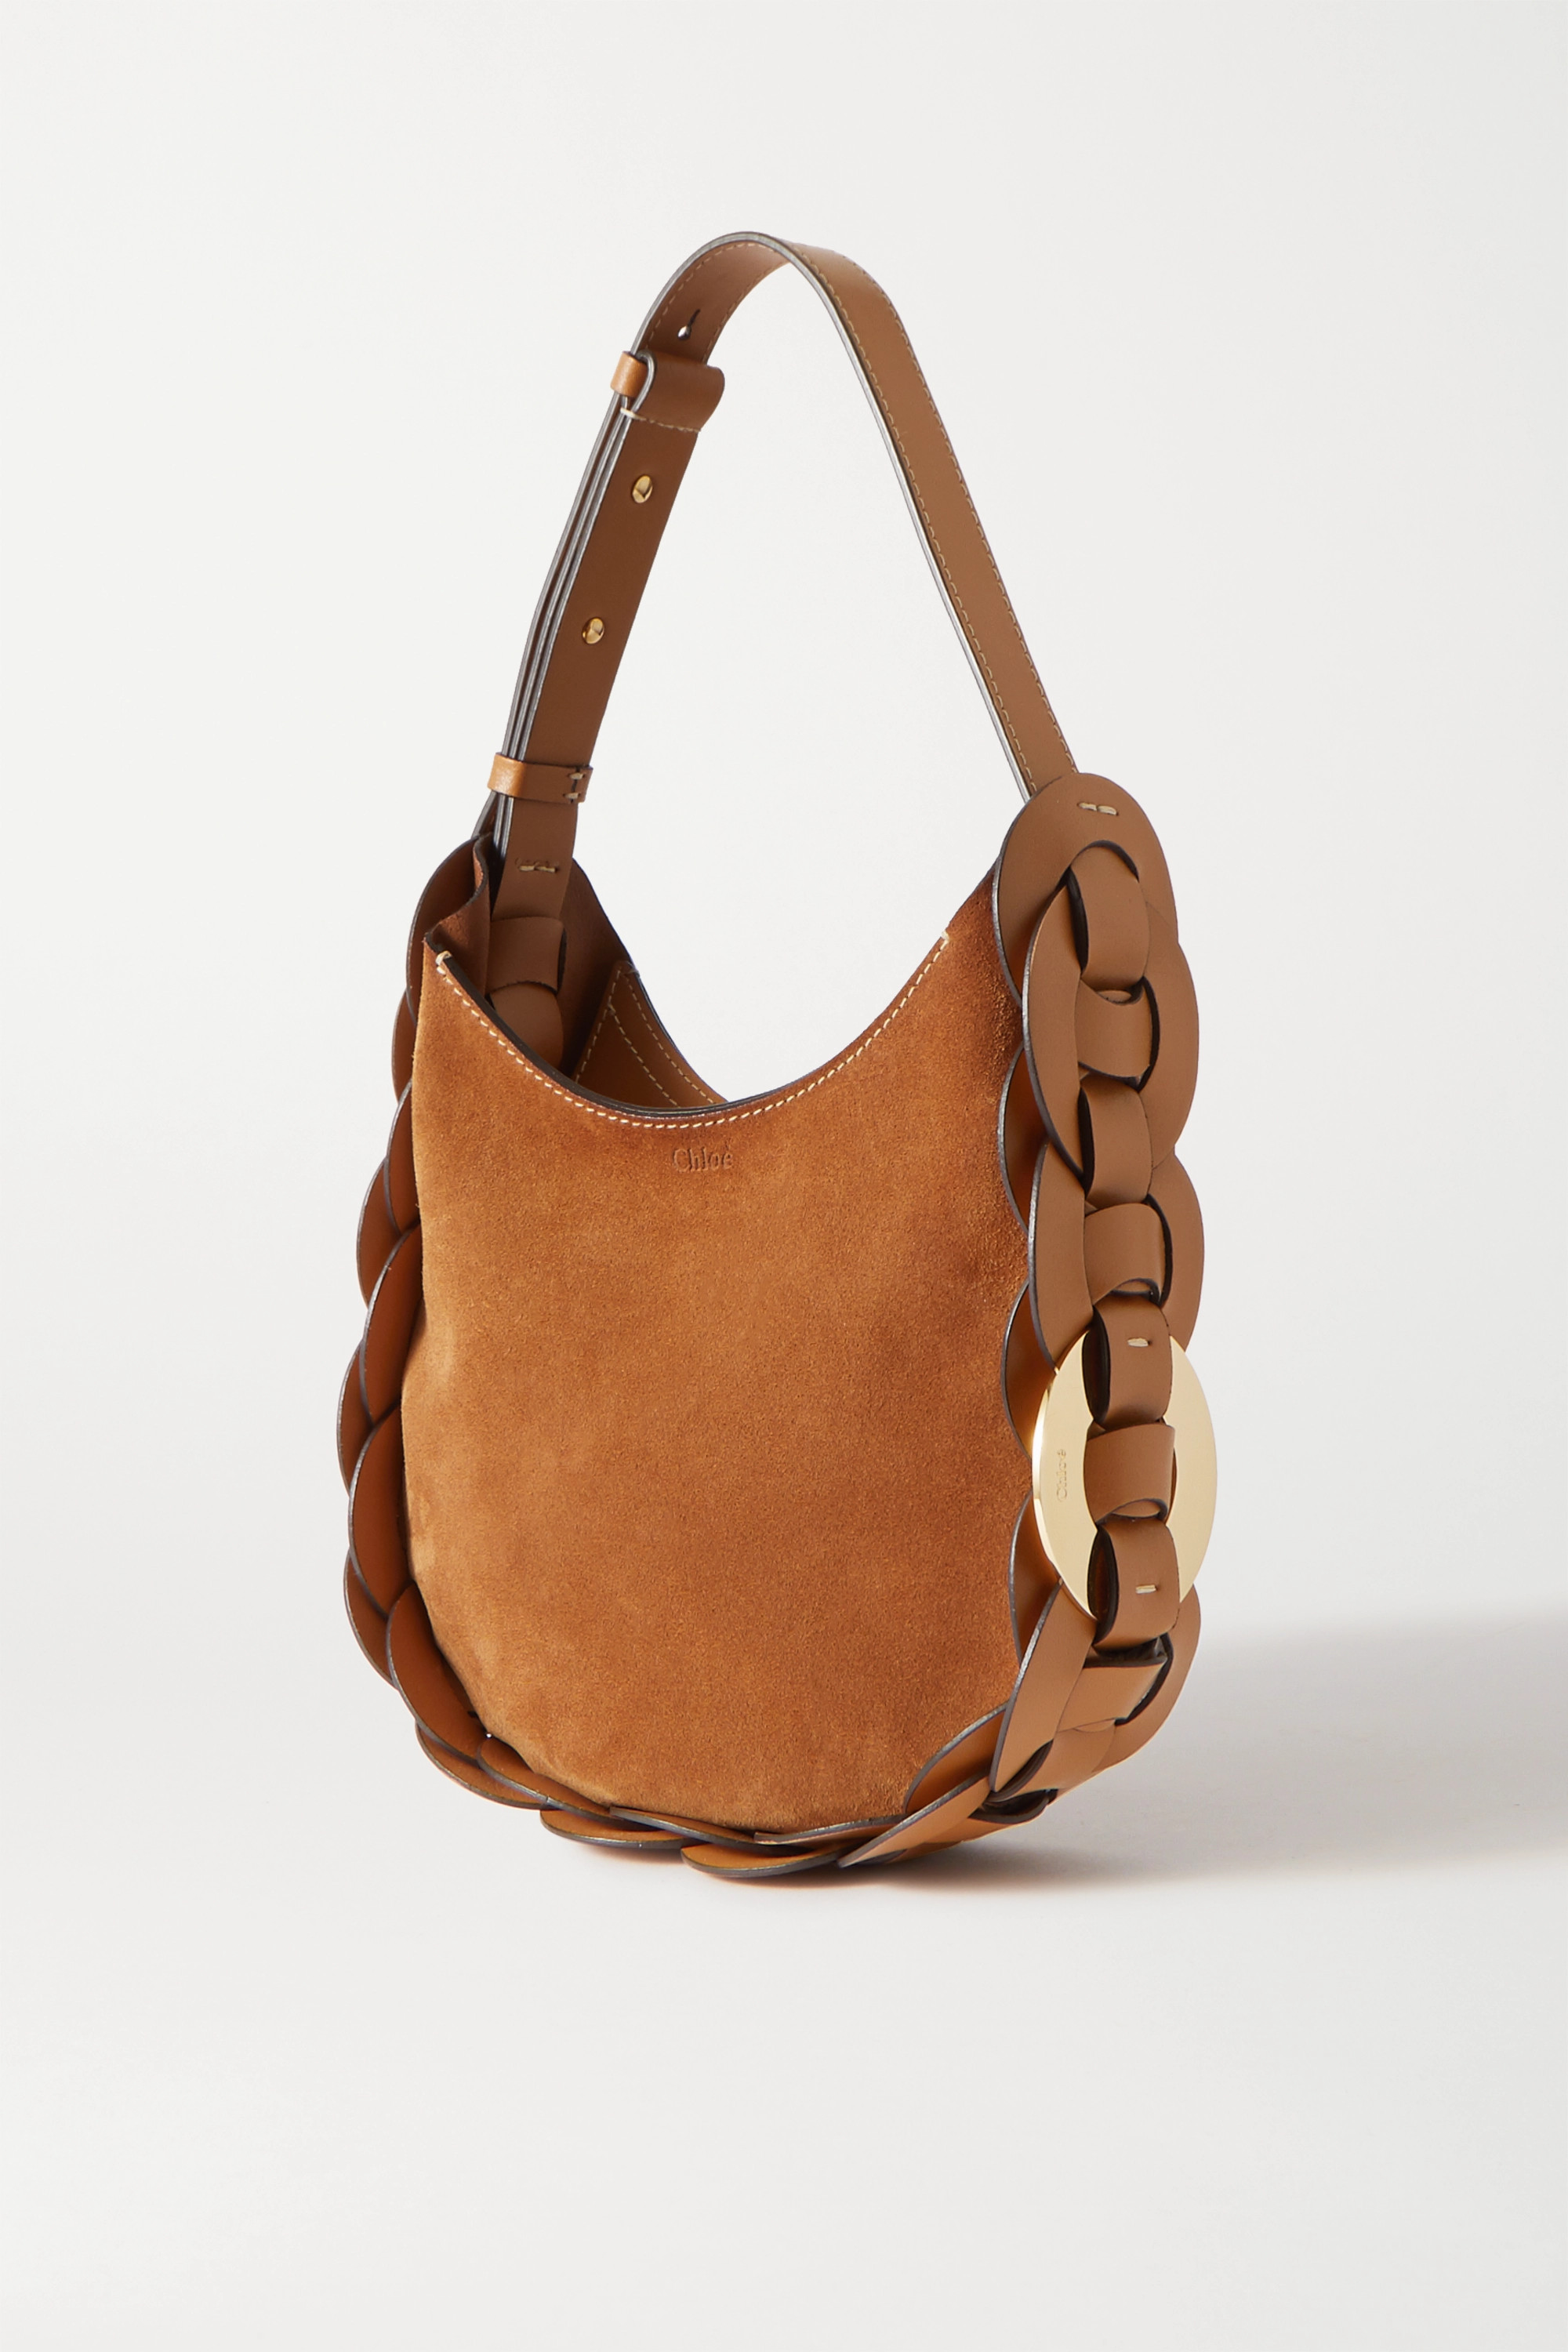 Chloé Darryl small braided leather and suede shoulder bag